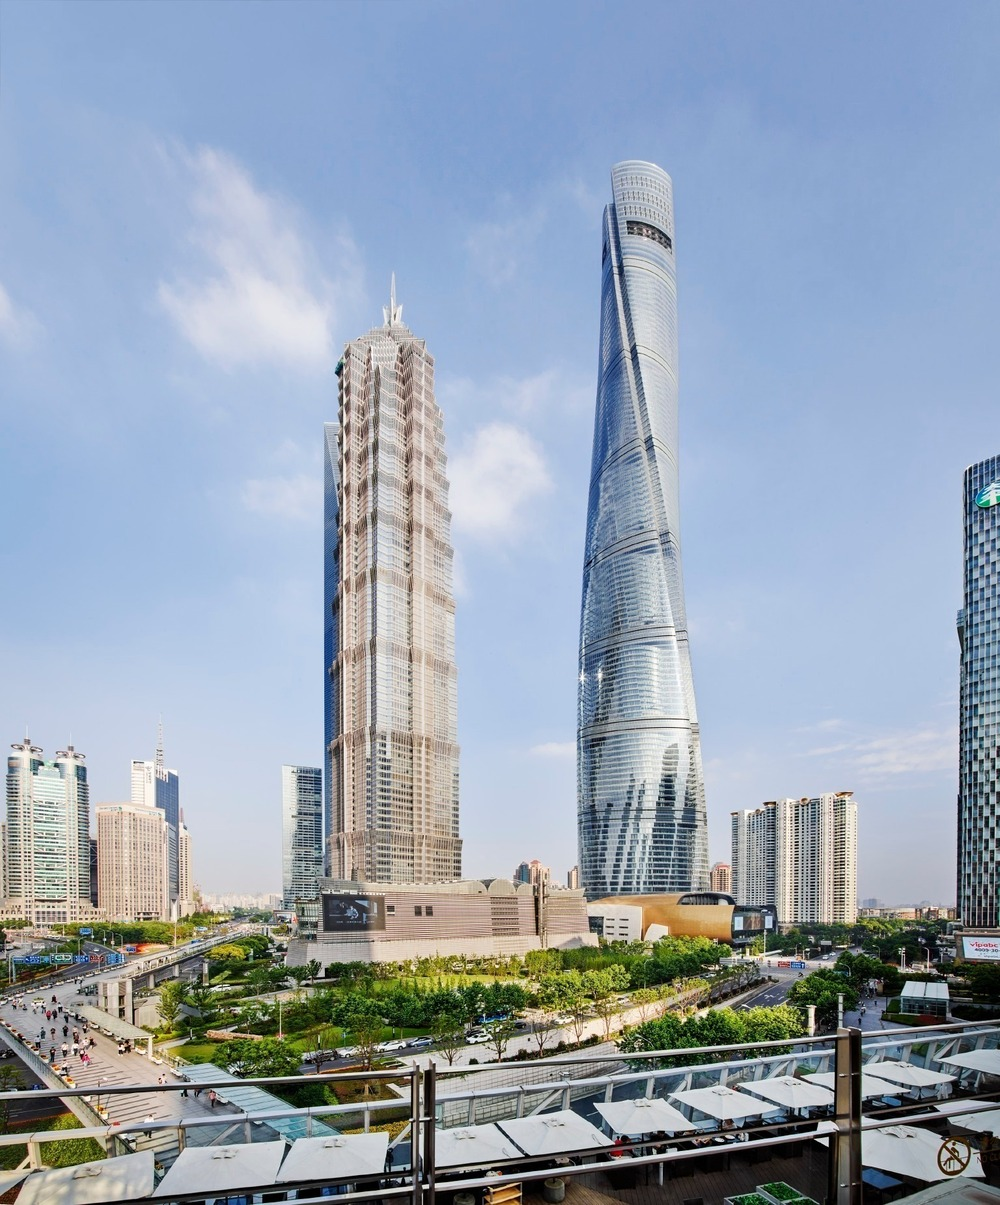 Architectural Design Of The Year: Dan Winey – Shanghai Tower Photo credit: Connie Zhou